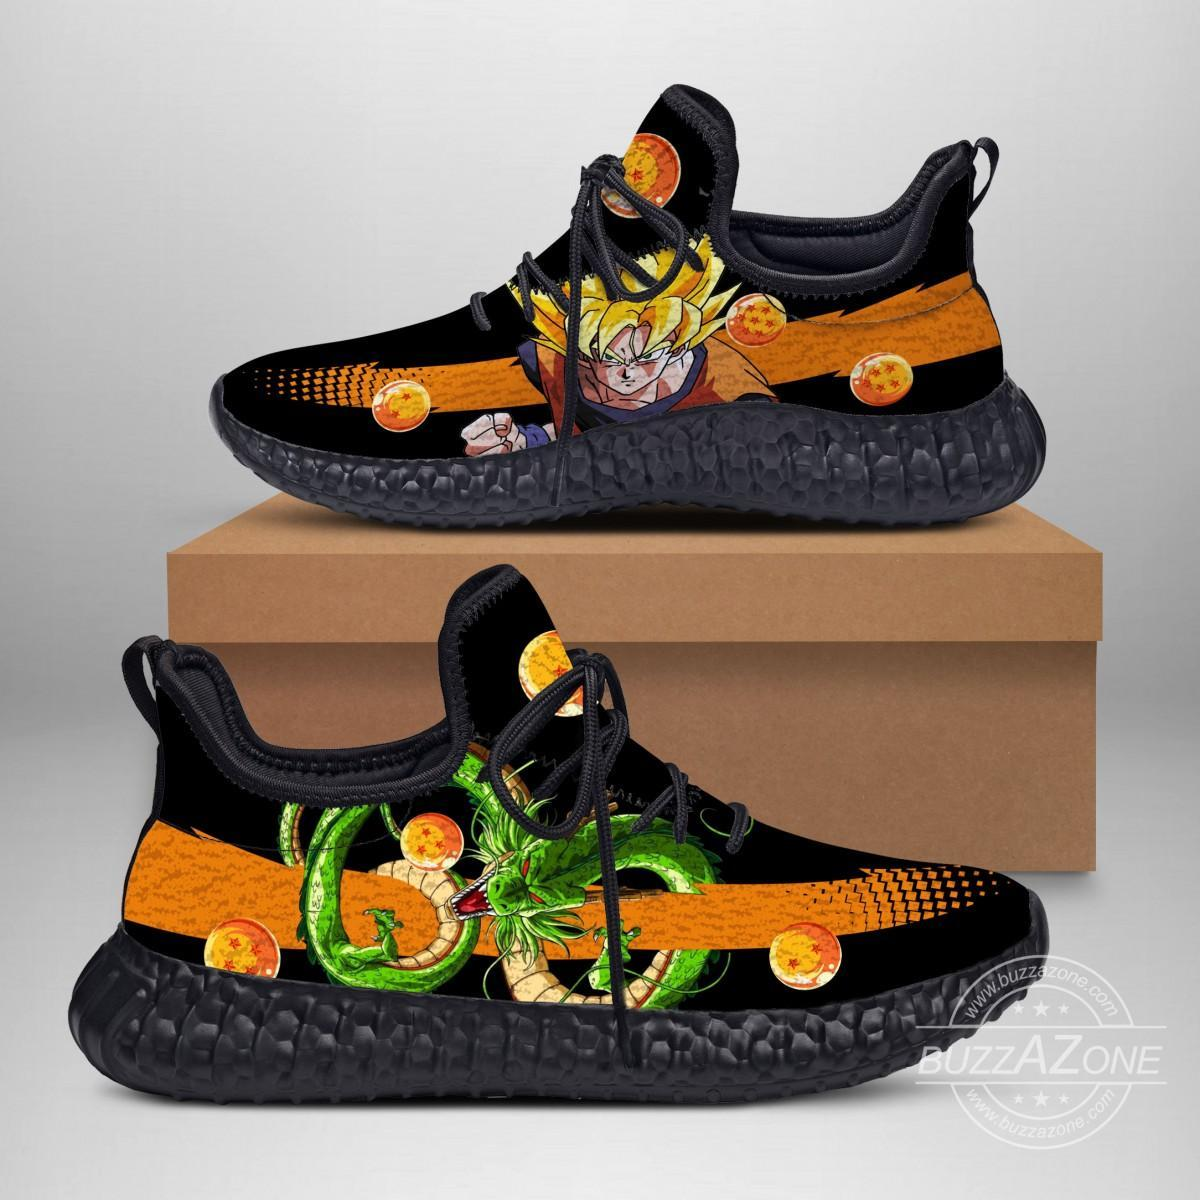 Goku Super Saiyan New Sneaker